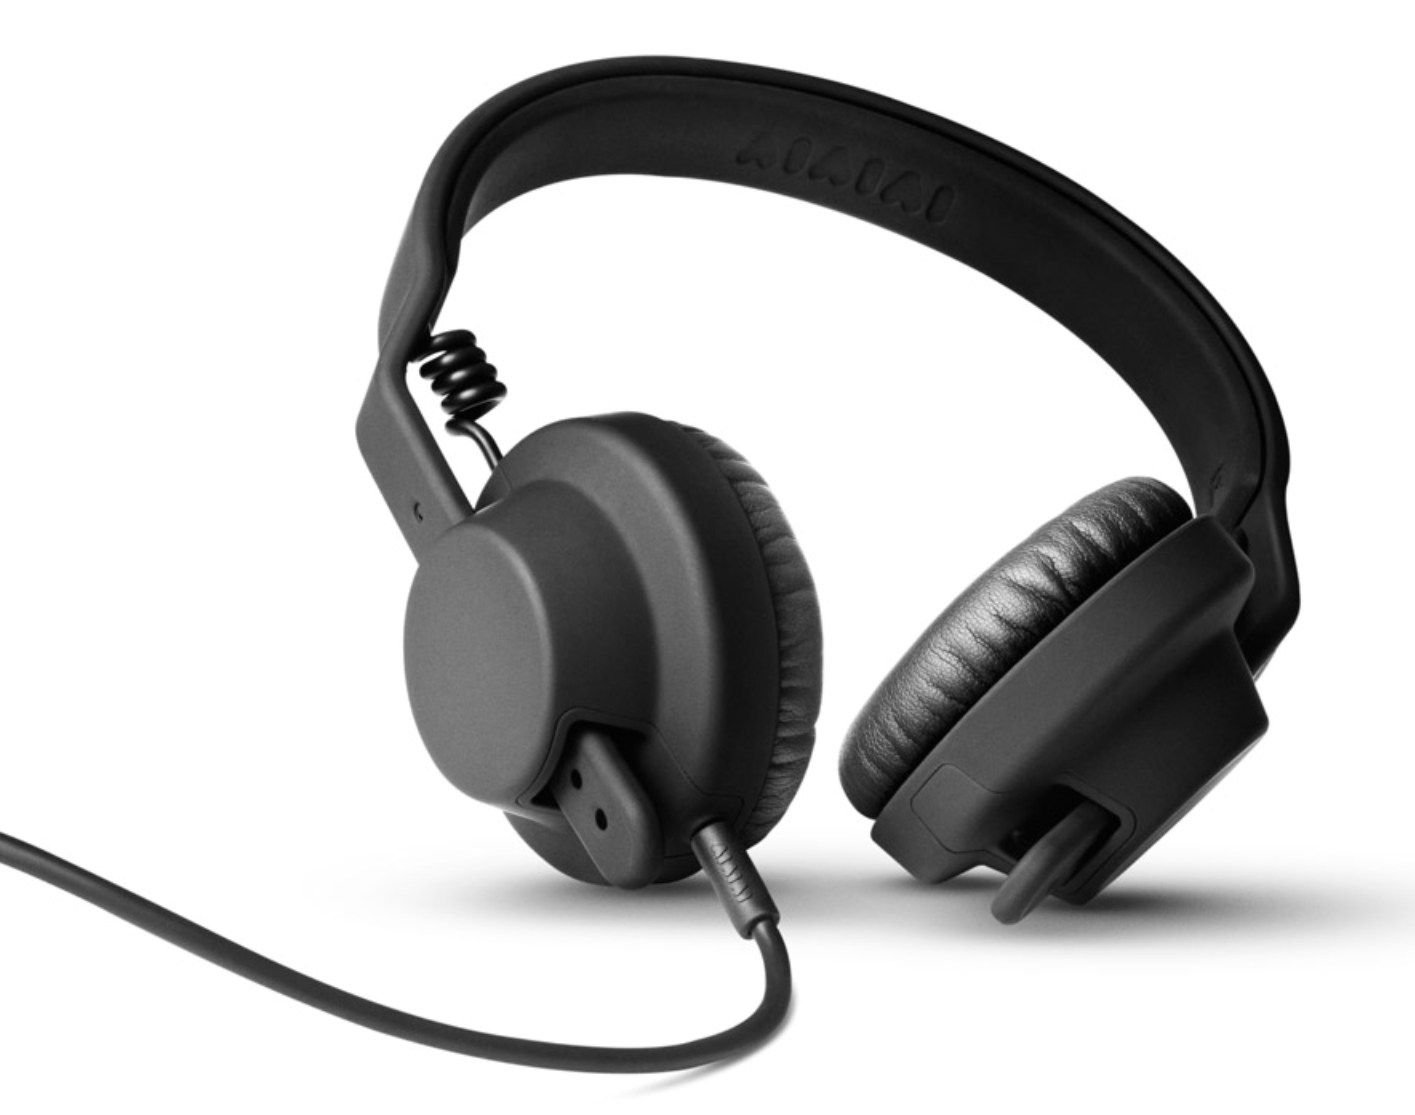 Tma Sedie ~ The tma headphone has been tested and tweaked by the world s